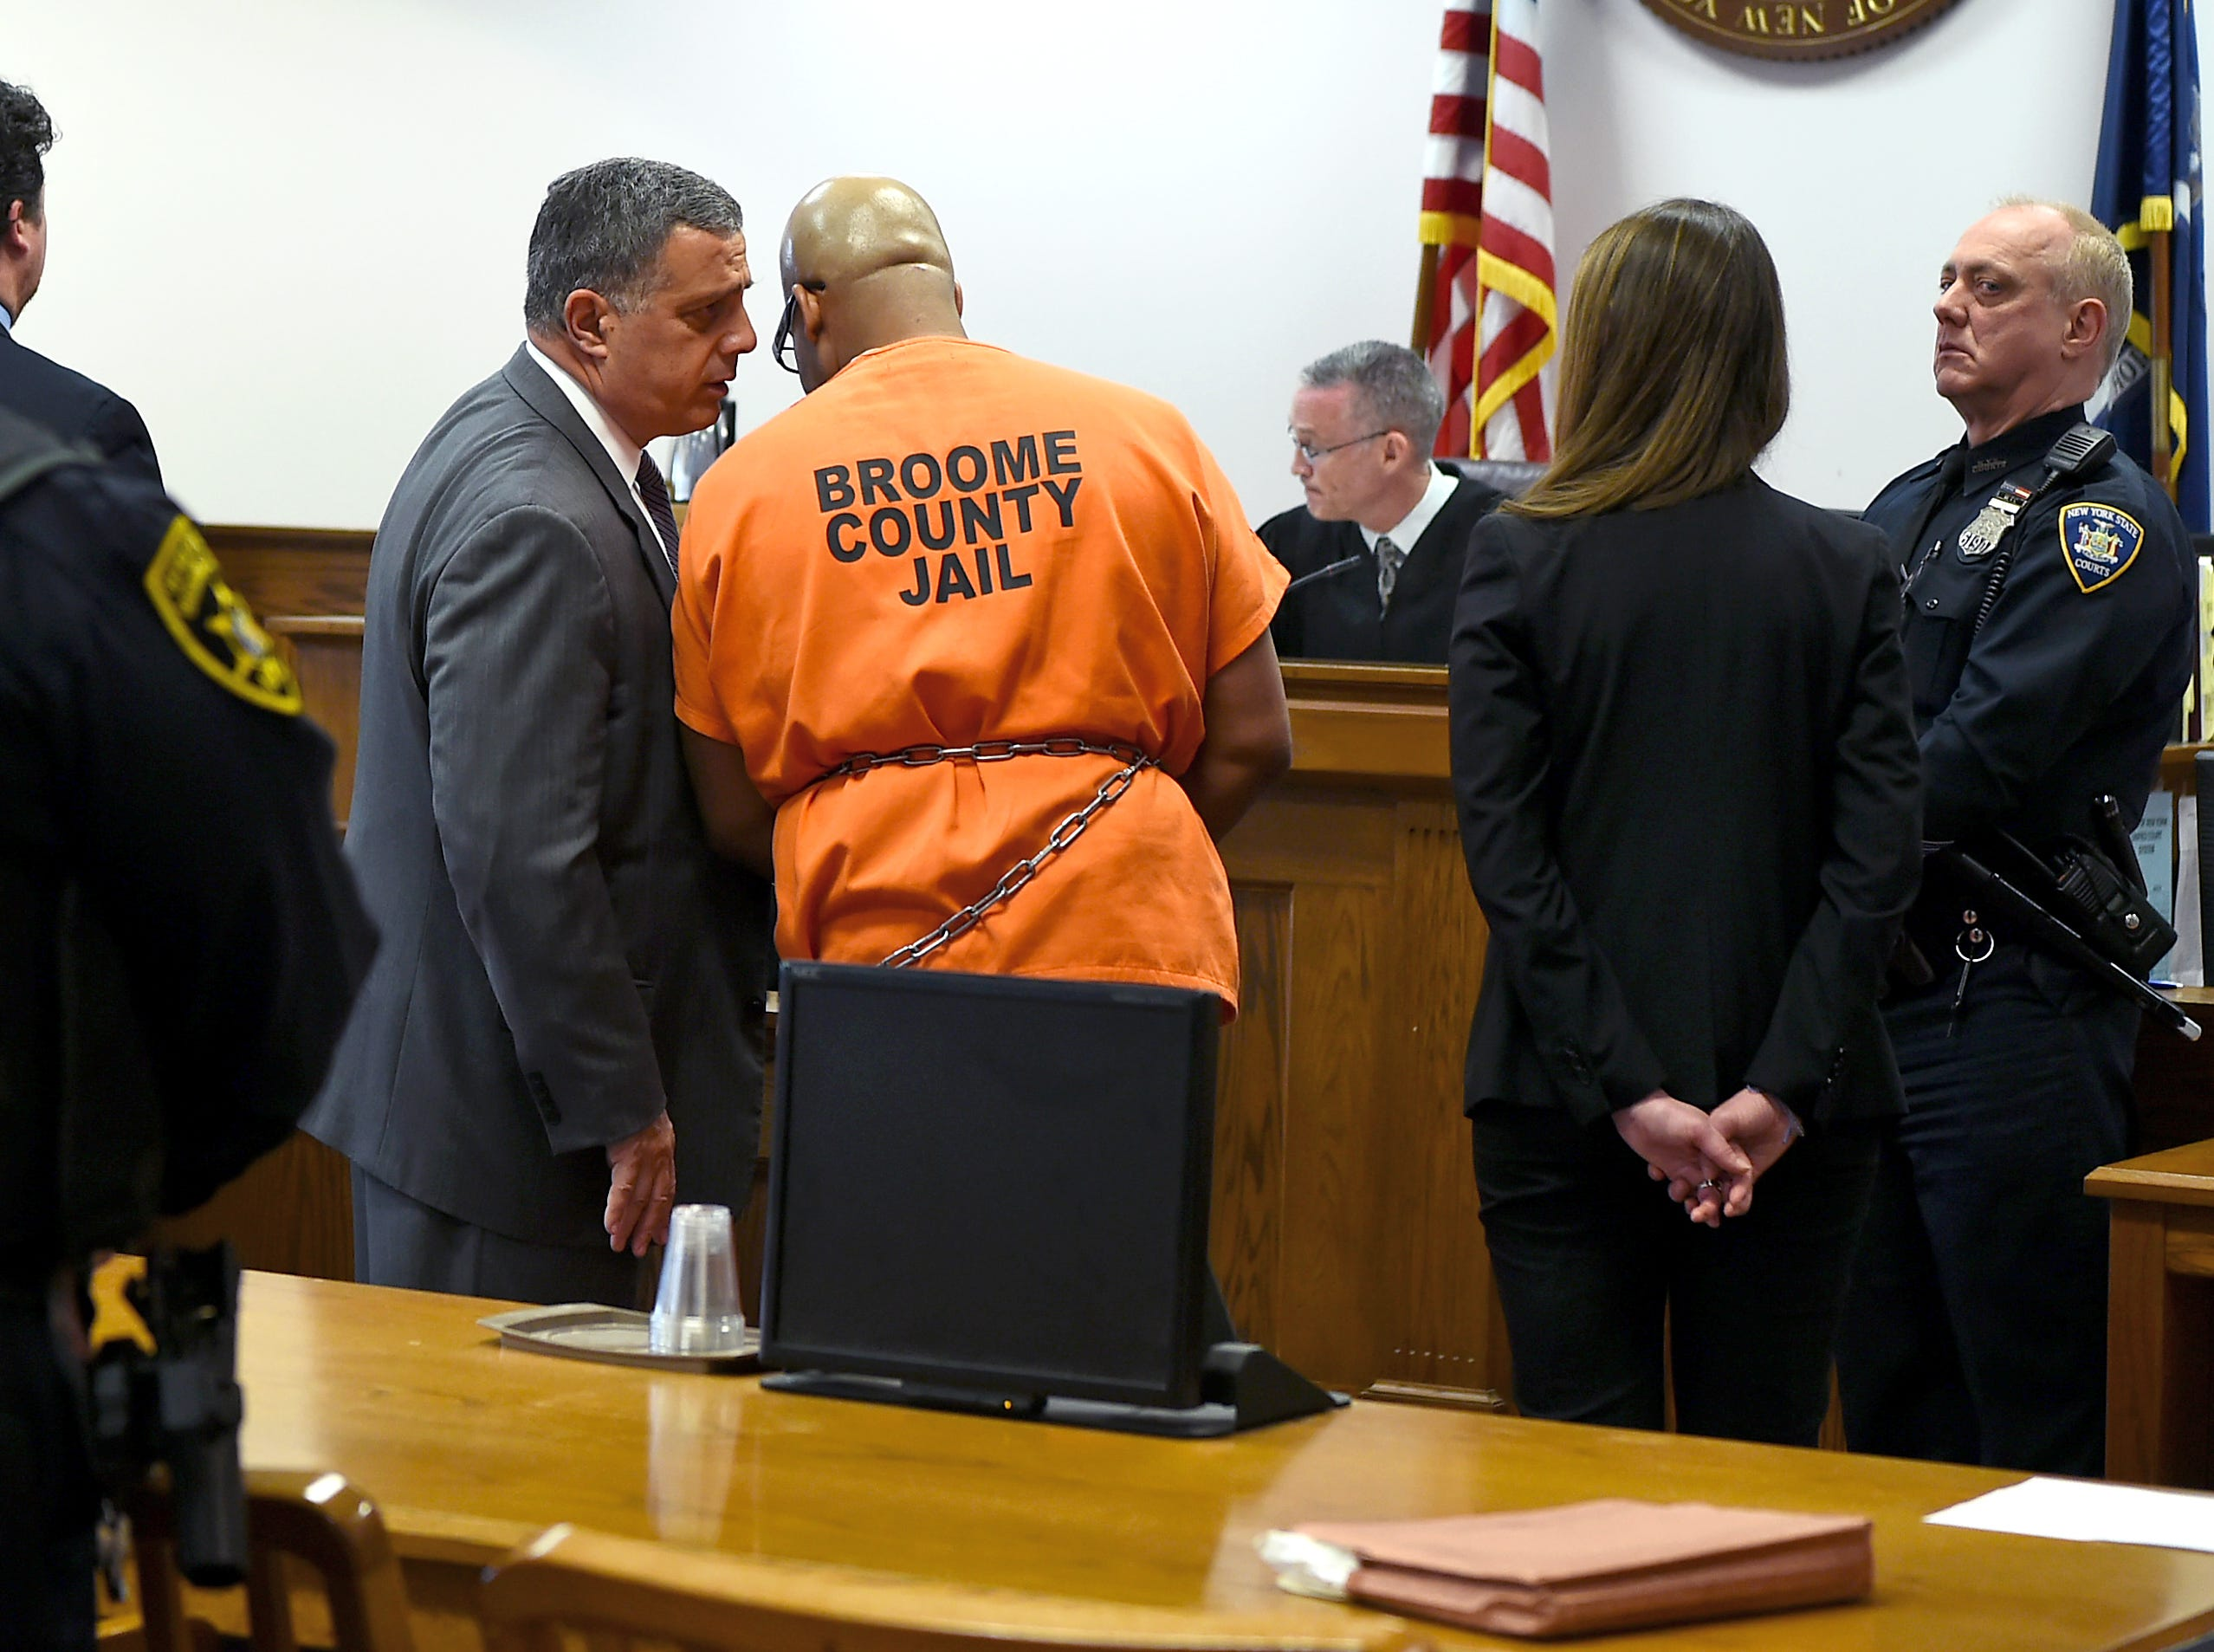 Aaron Powell was sentenced to life in prison for the 2013 murders of Mario Masciarelli and Christina Powell. Powell brutally killed his estranged wife and Masciarelli in the Town of Binghamton after the Christina and Masciarelli while on their first date. March 8, 2018.